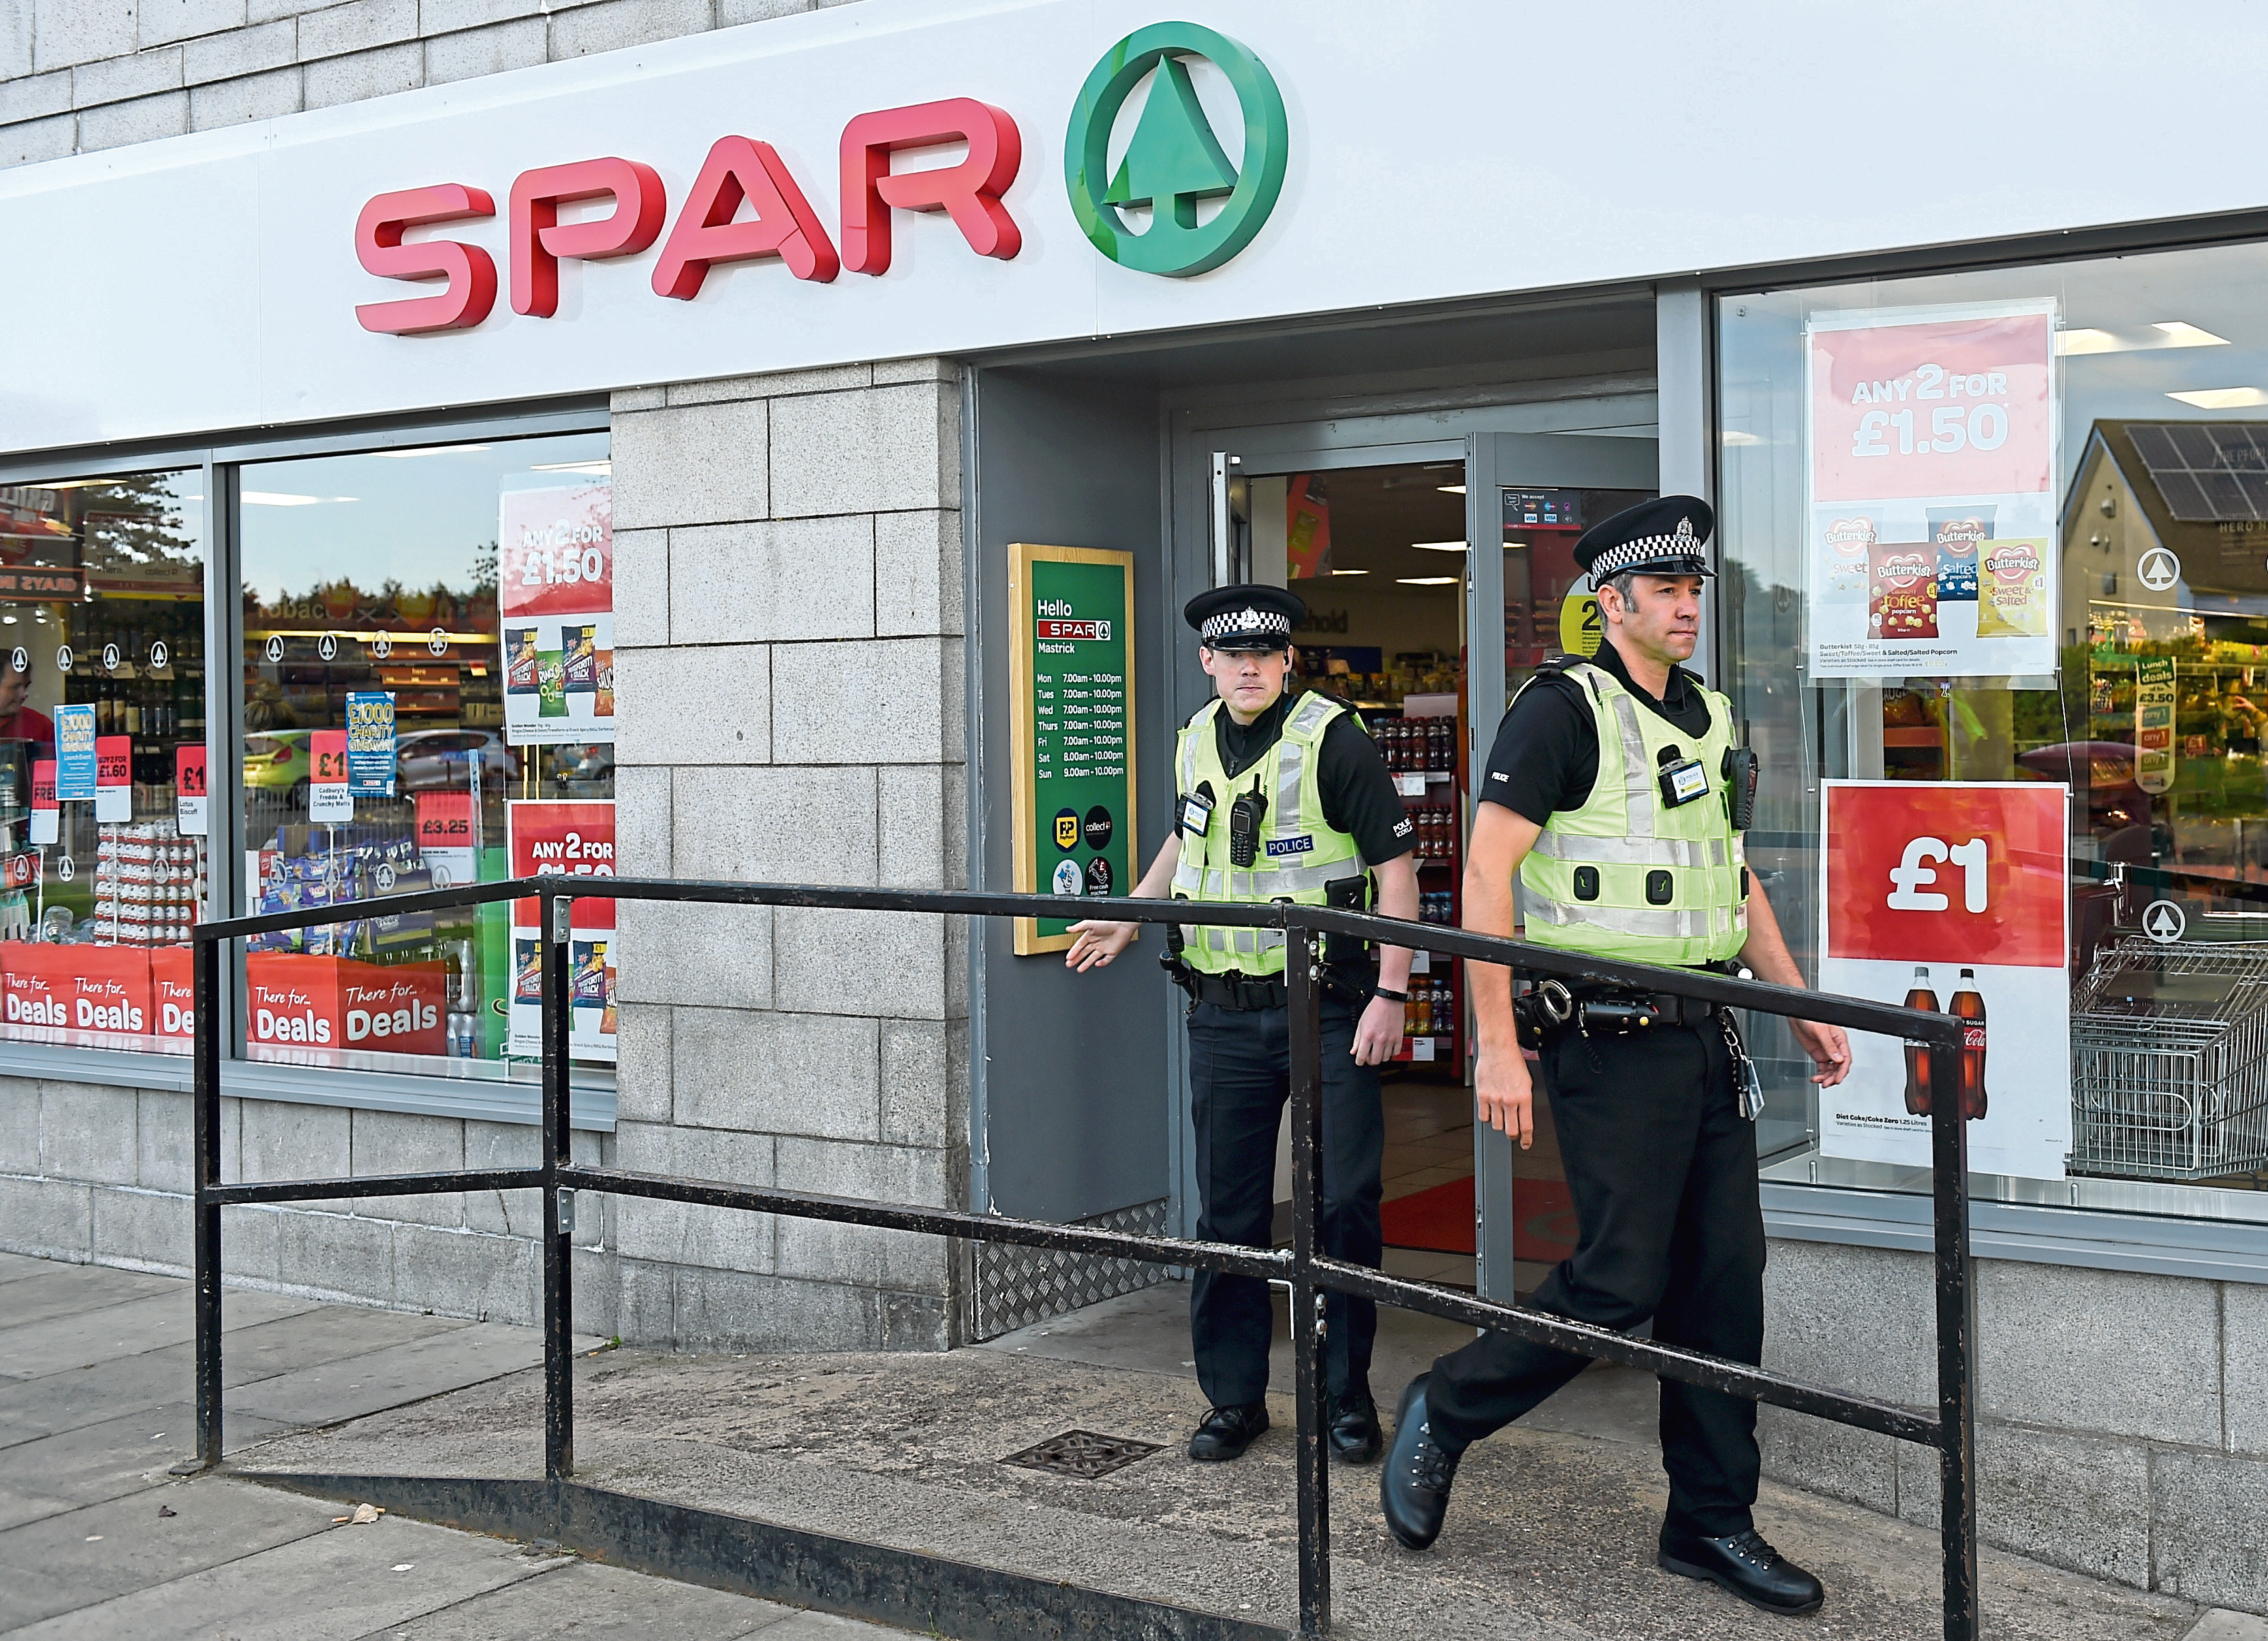 The Spar has been forced to lock up coffee due to a spate of thefts. Picture by Kenny Elrick